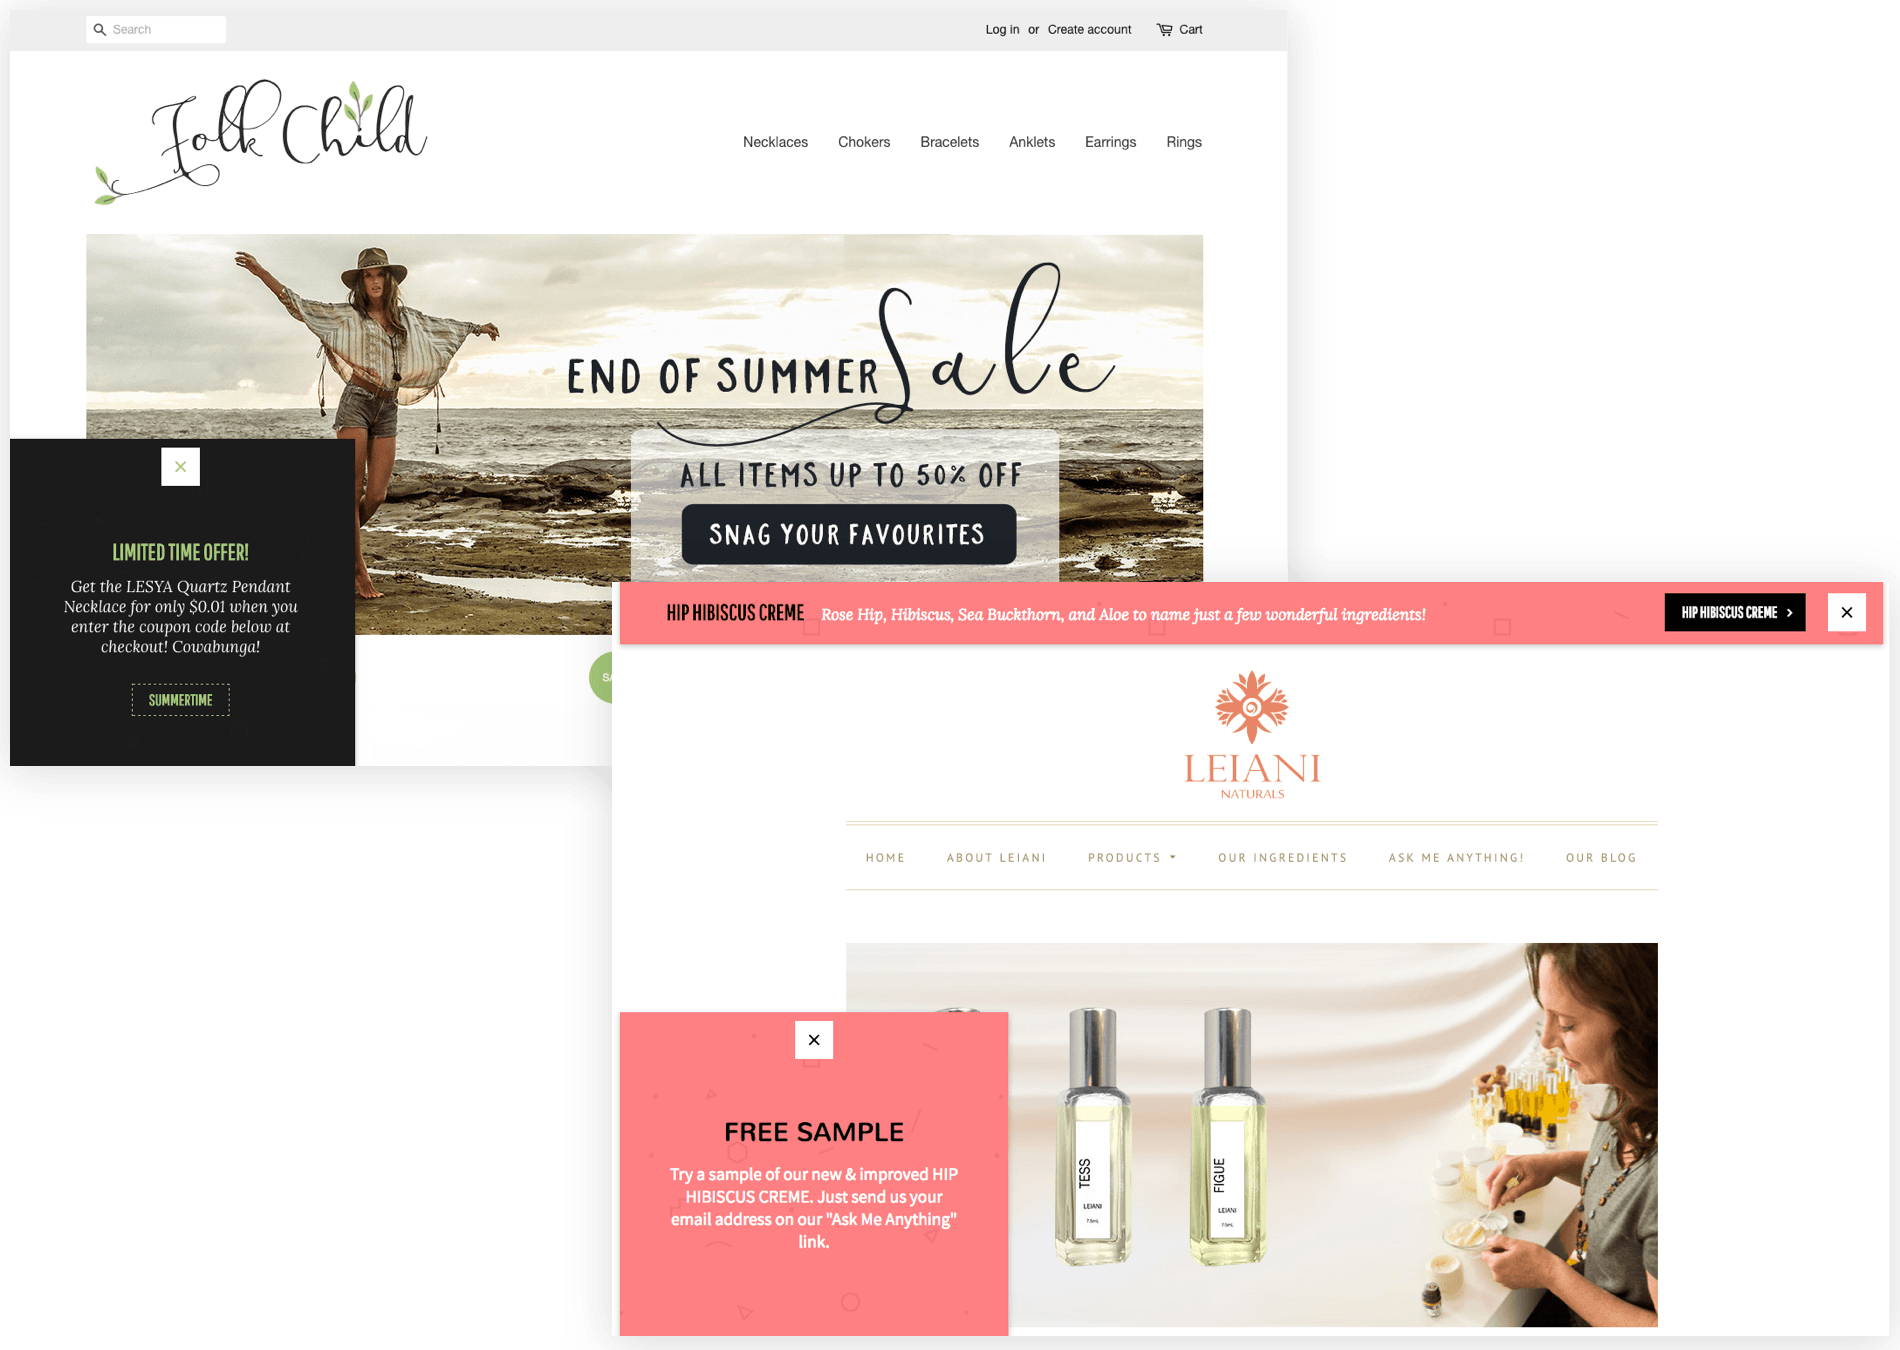 Free sample and limited time offer popups on Folk Child and Leiani websites